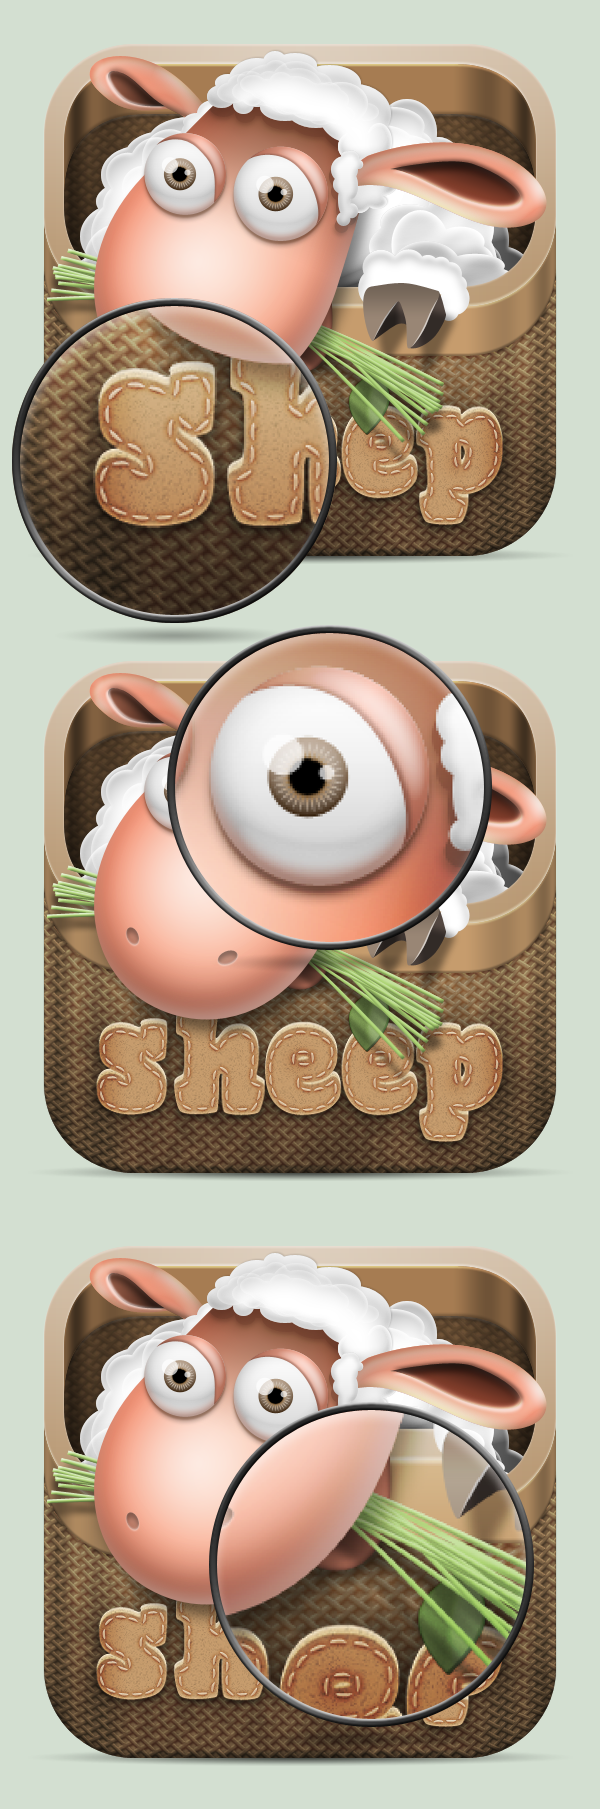 Sheep app details by hbielen